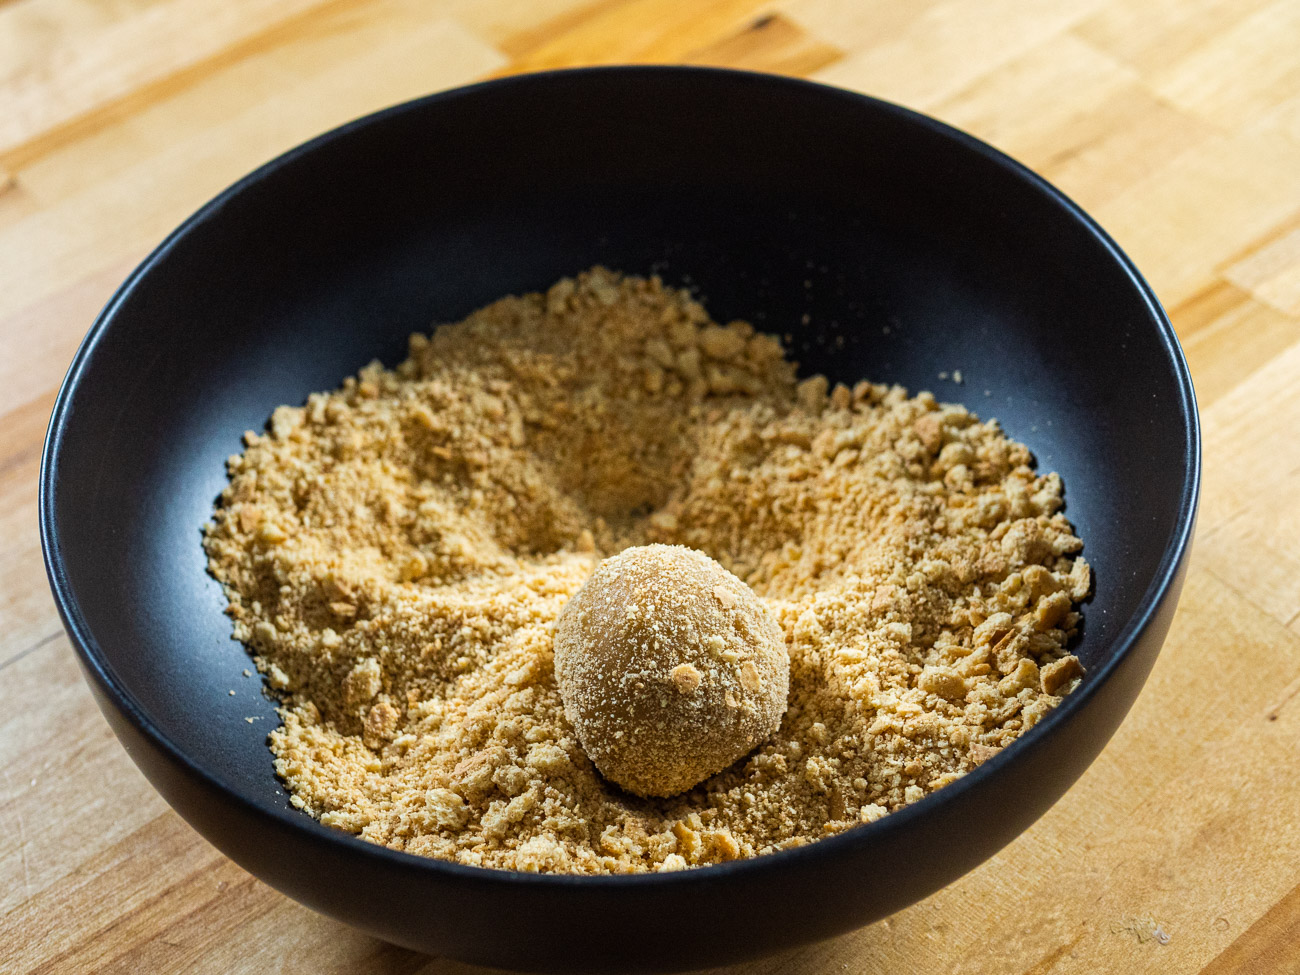 Place 1/2 cup graham cracker crumbs in a shallow bowl. Then, using a small spoon or cookie scoop, scoop the cookie dough and roll in graham cracker crumbs.